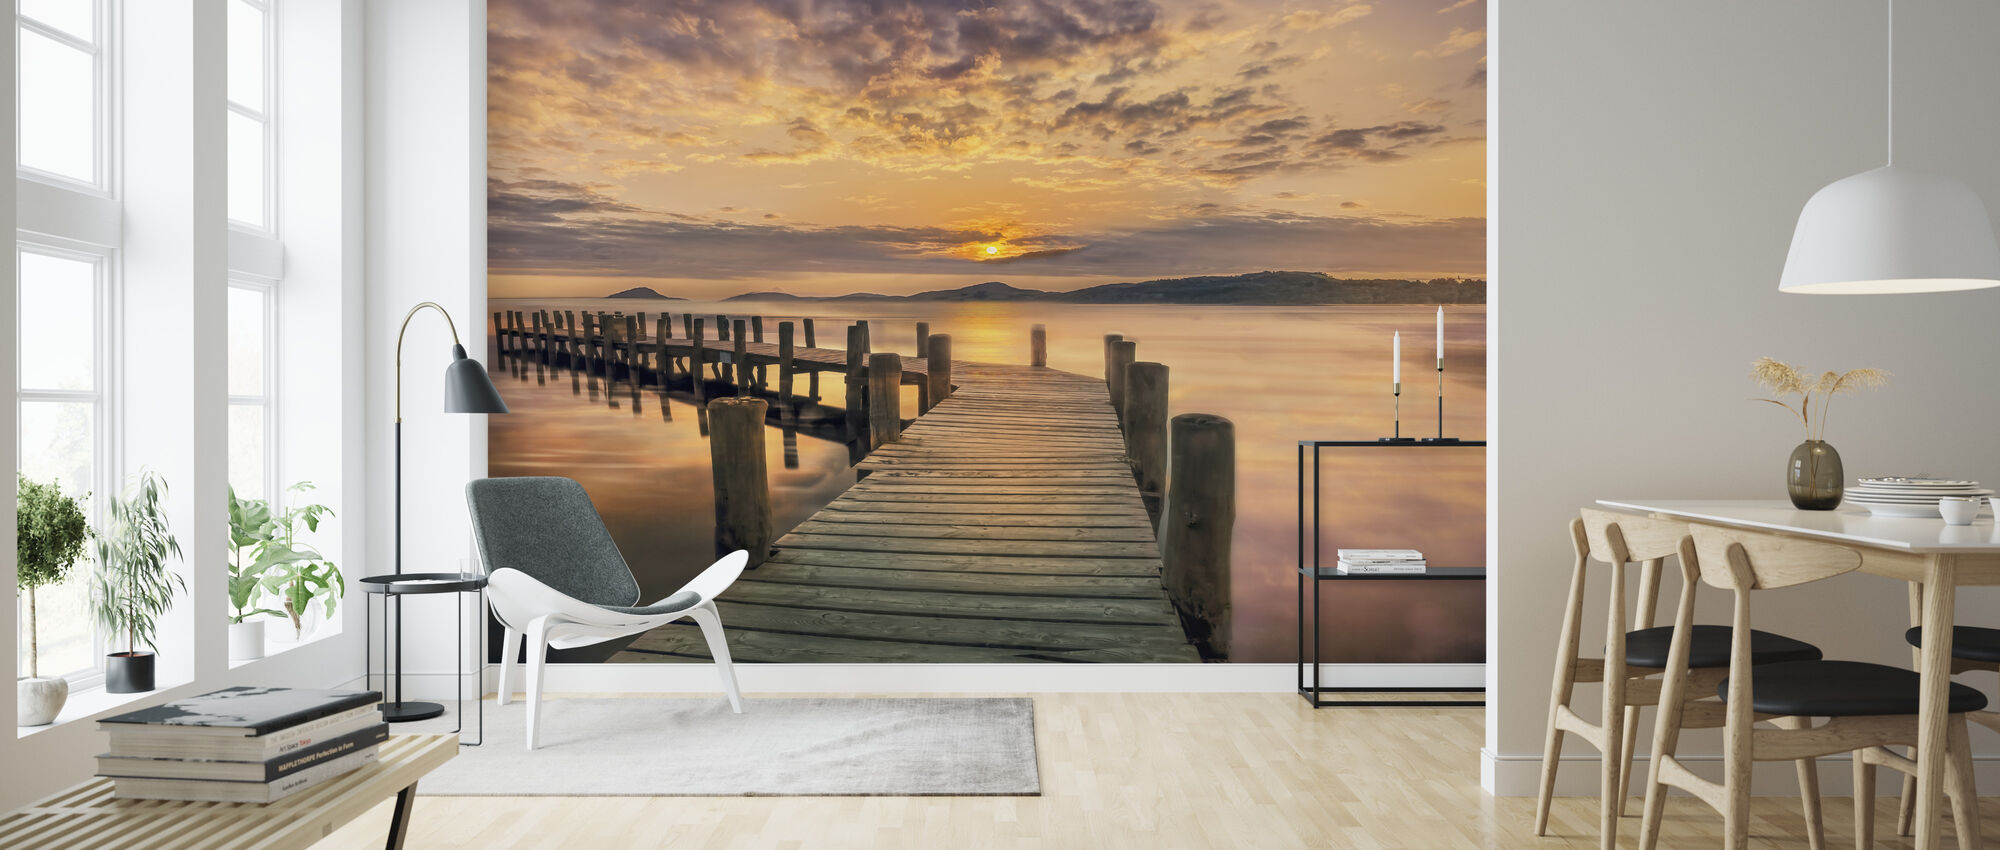 Pier in Sunset - Behang - Woonkamer